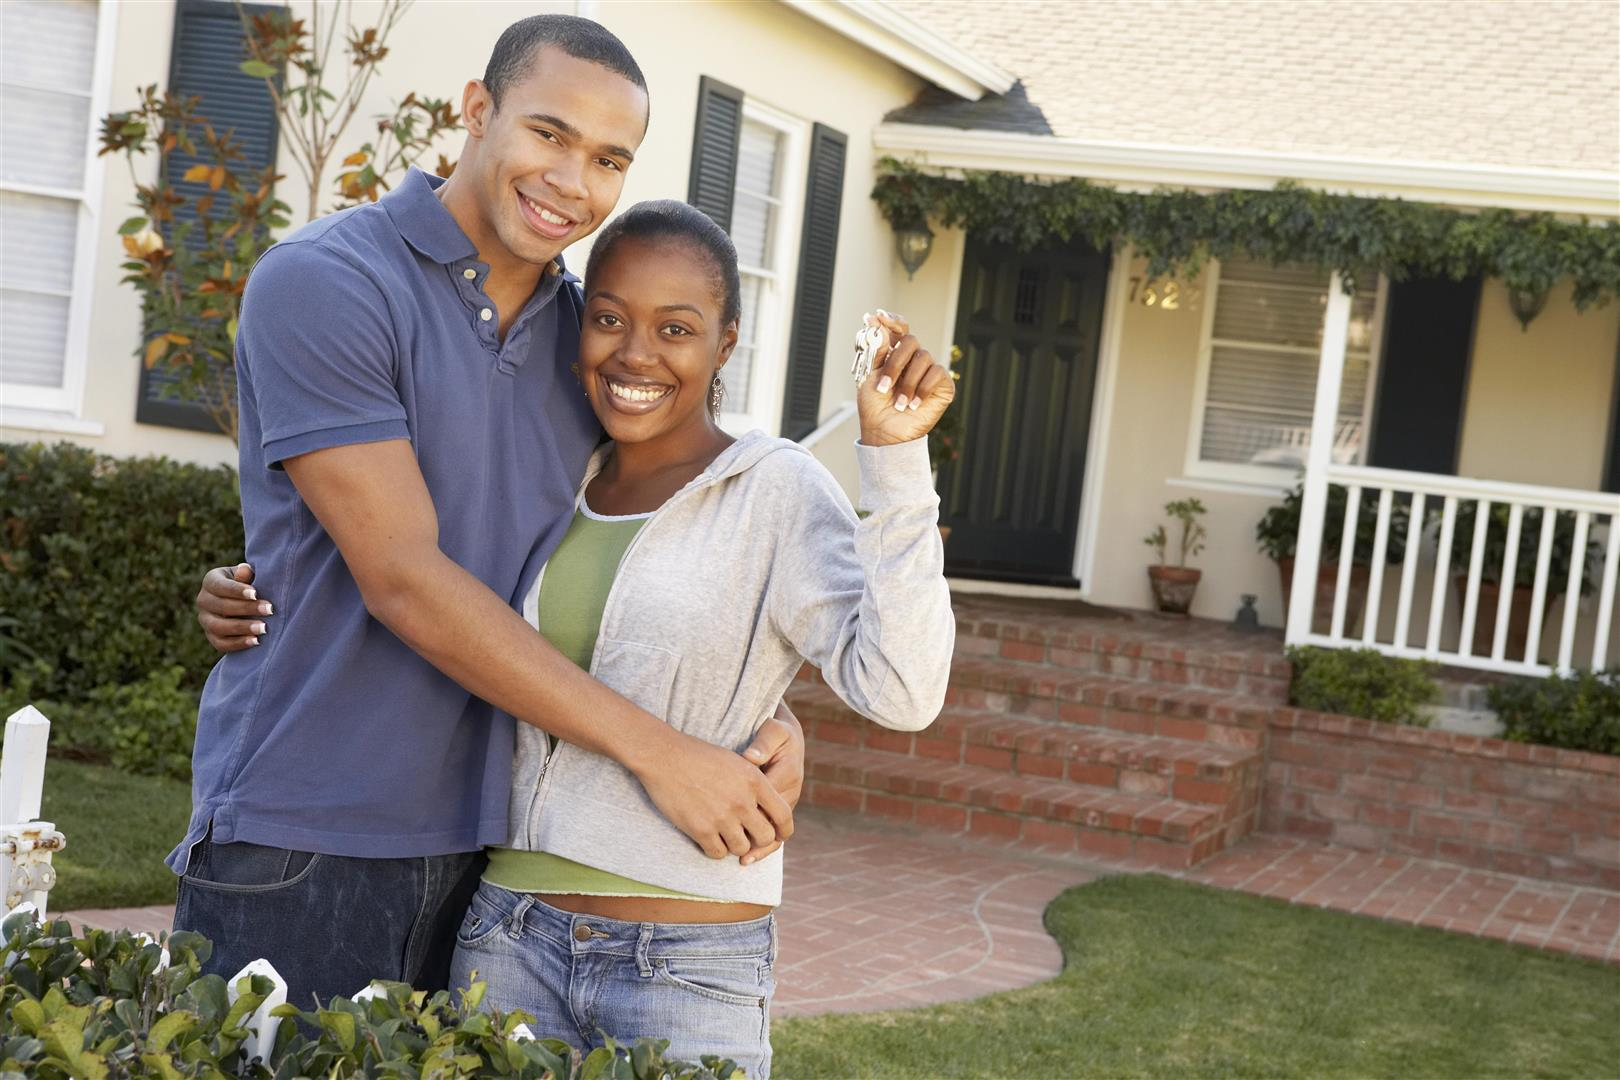 Couple in front of new house - Houses for sale in Seattle, Washington